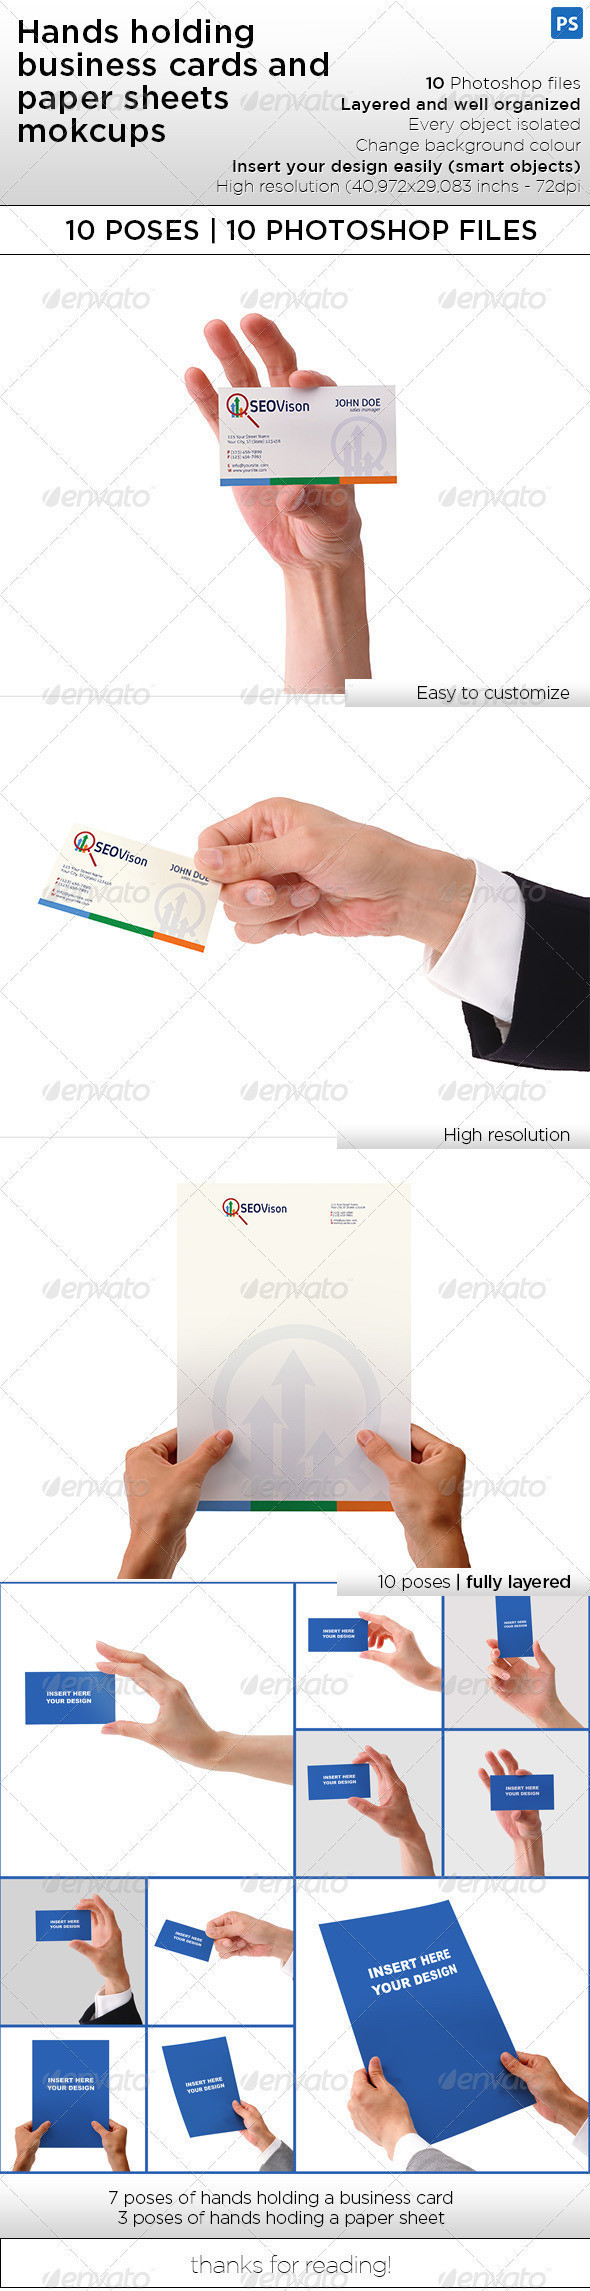 Hand holding business card and paper sheet mockups themestack hand holding business card and paper sheet mockups reheart Image collections